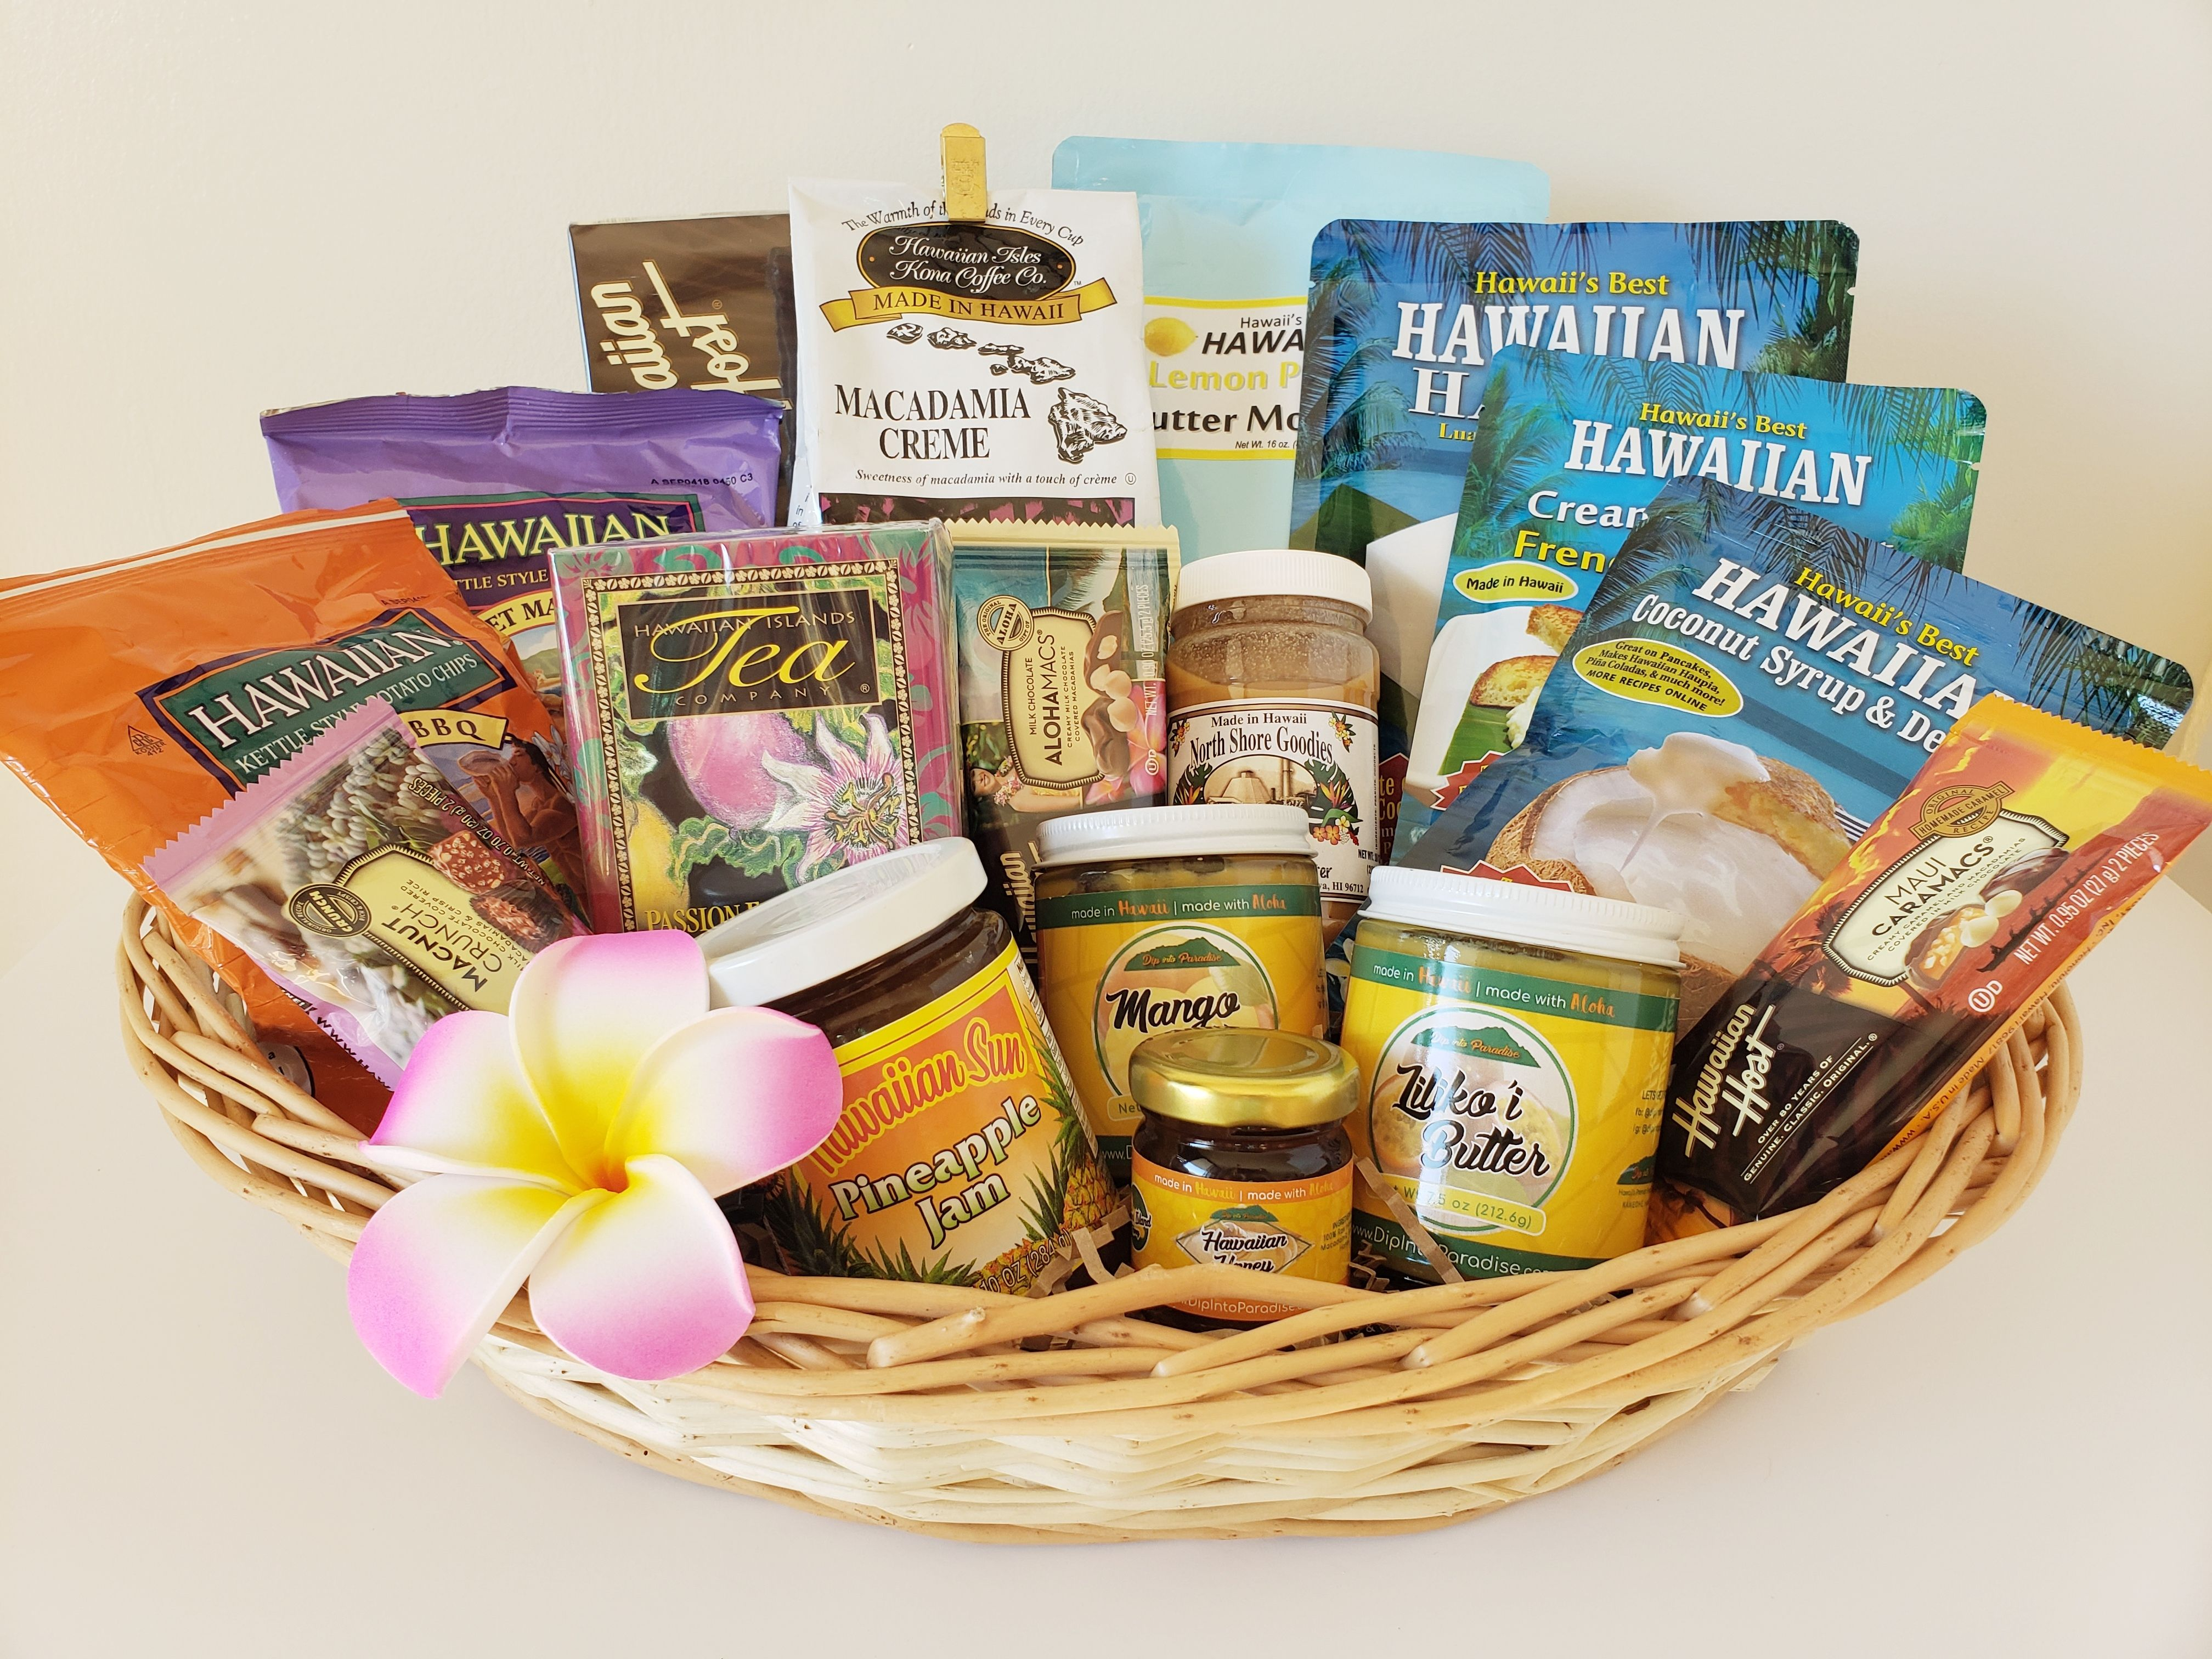 Delicious hawaiian foods in gathered in one basket for you